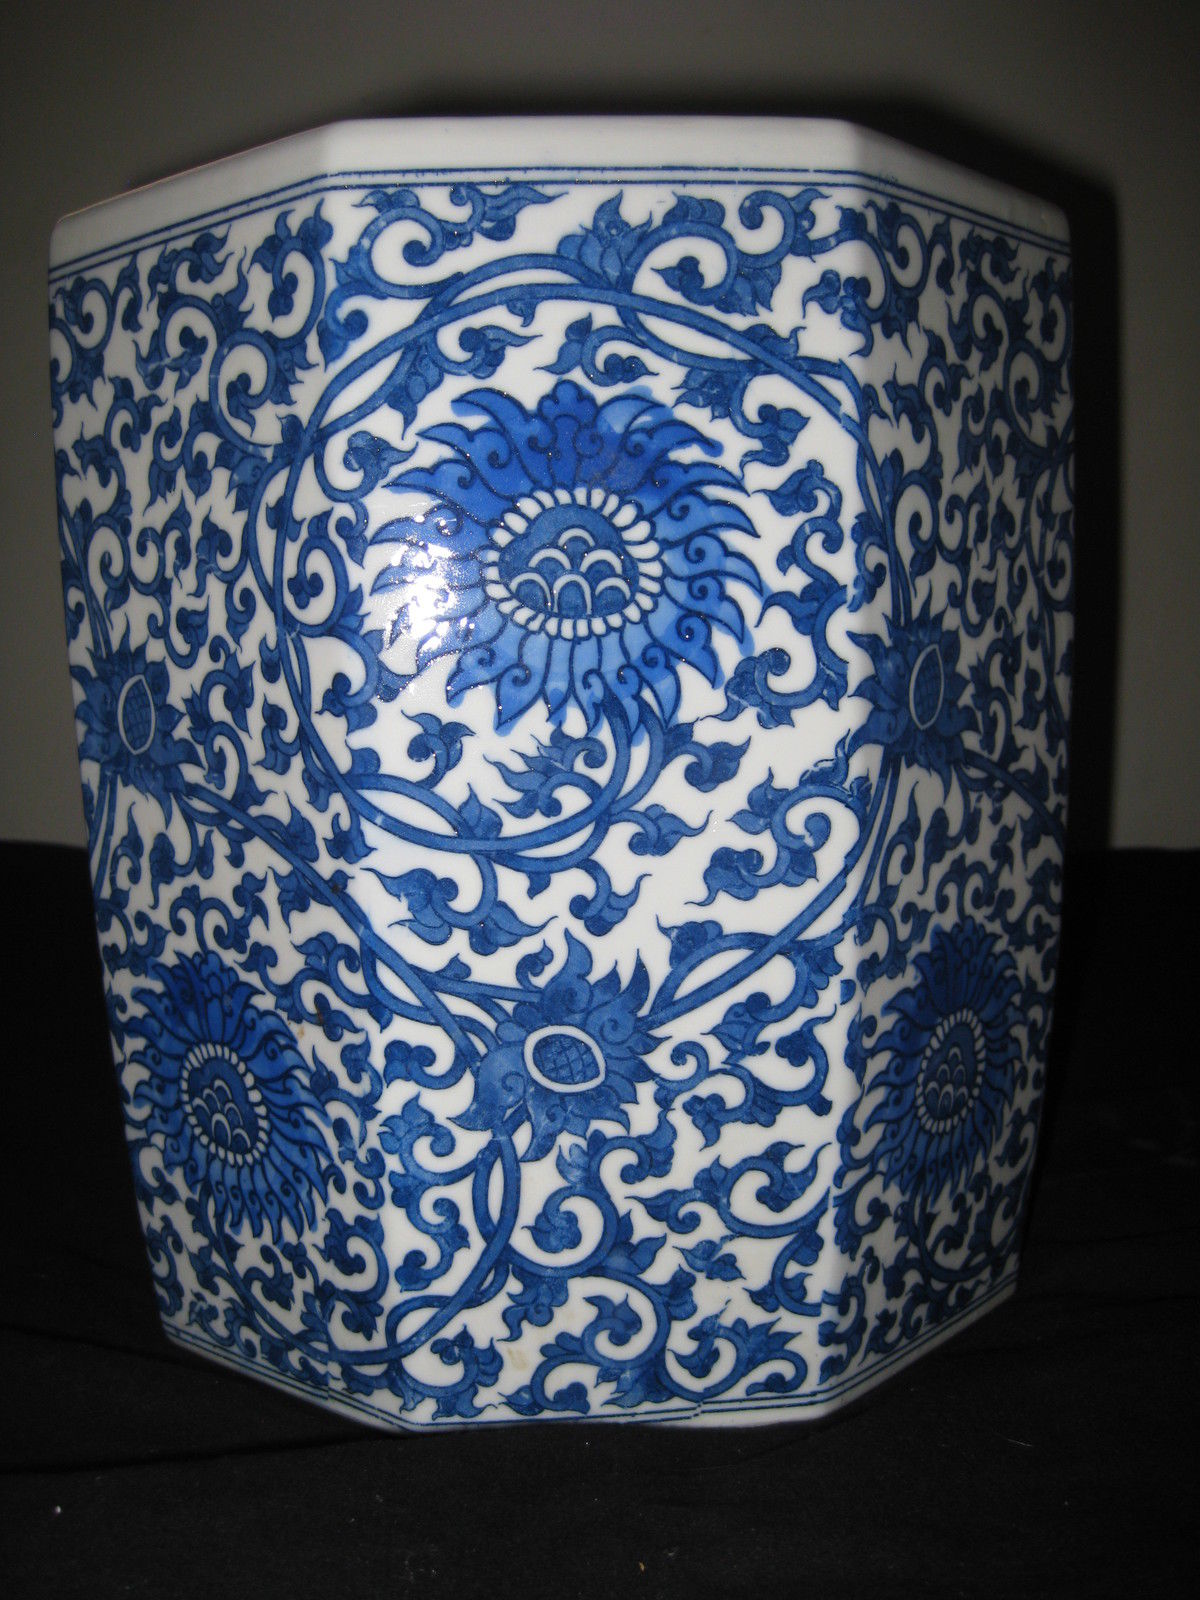 ANTIQUE CHINESE BRUSH POT PORCELAIN OCTAGON BLUE AND WHITE, 19TH CENTURY.